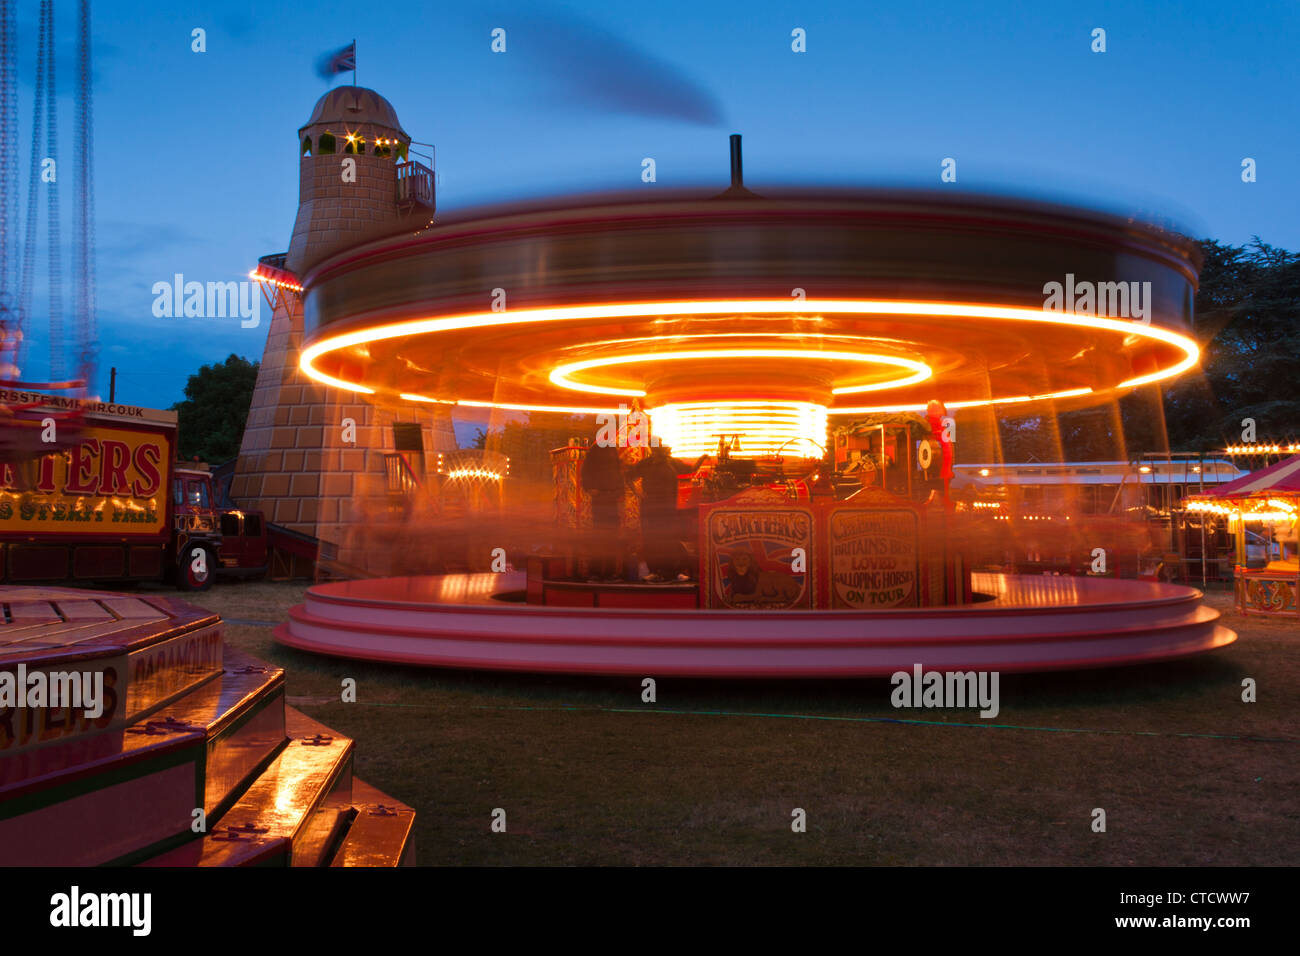 a-traditional-steam-driven-merry-go-roun